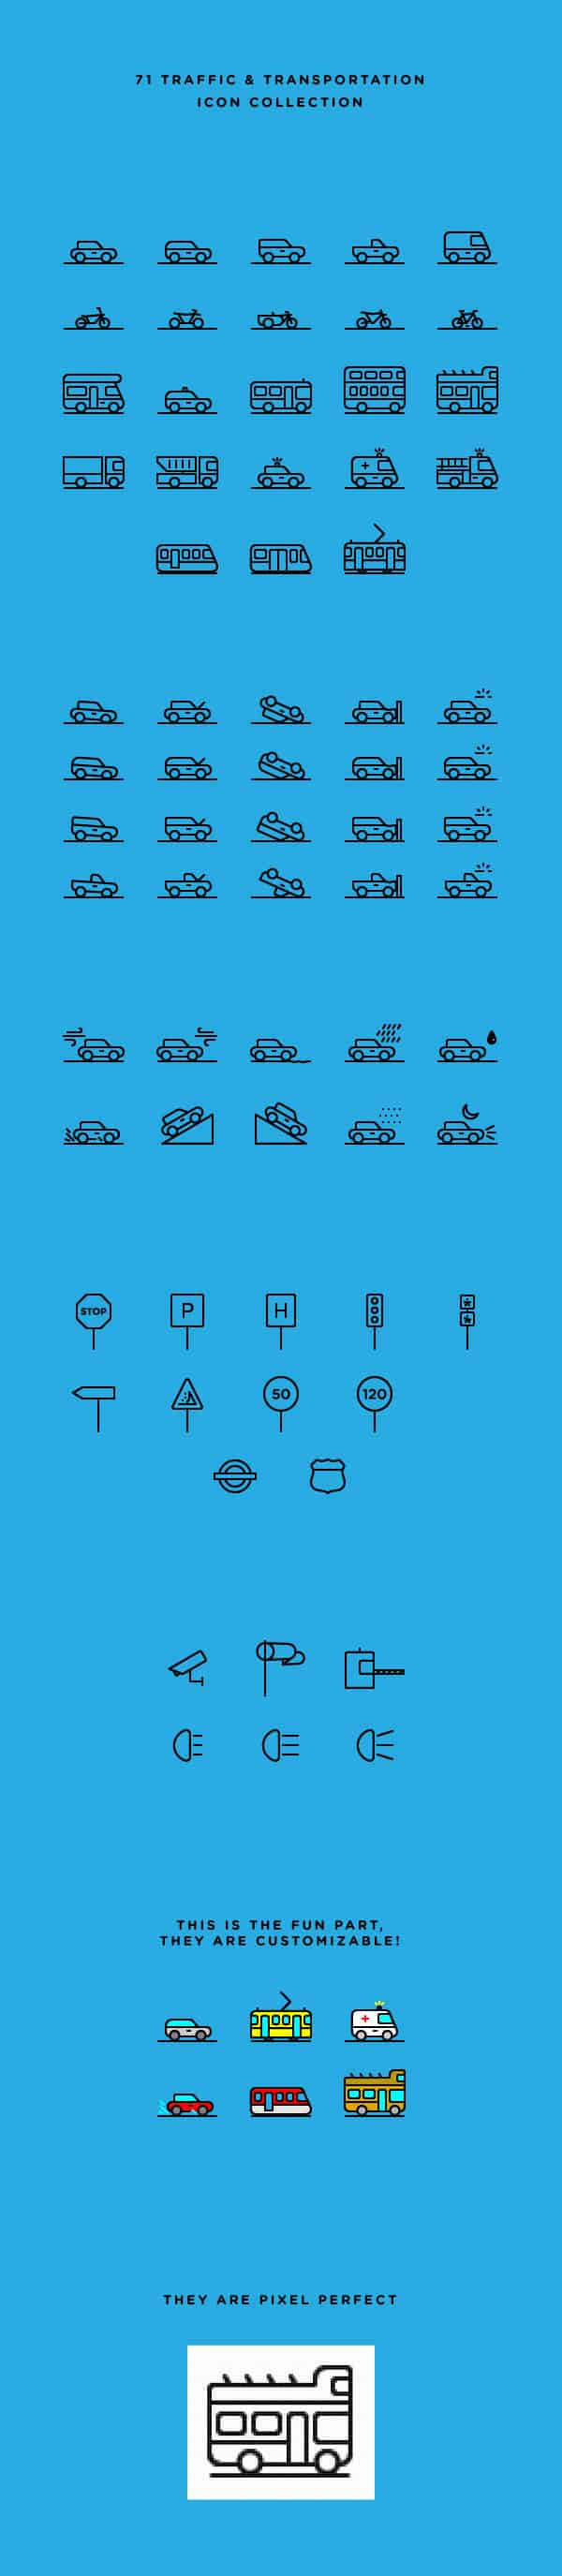 71 Traffic & Transportation Icons | GraphicBurger